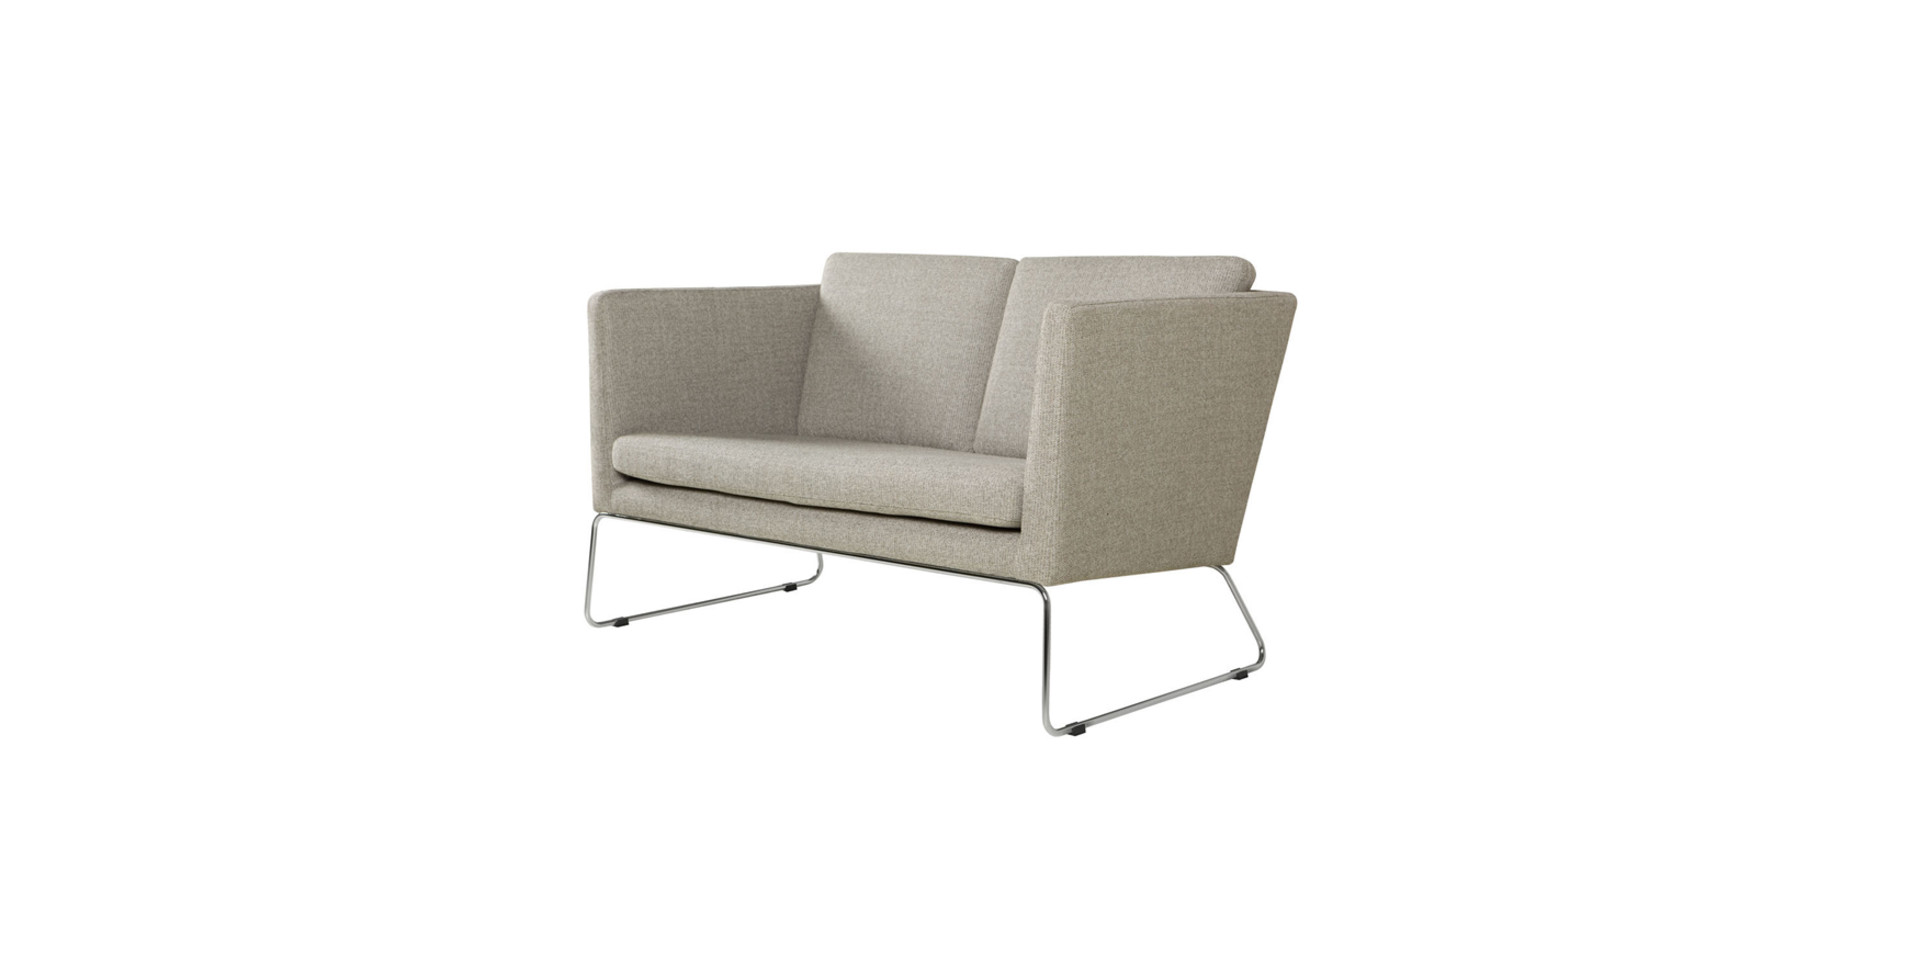 sits-clark-canape-2seater_origin51_light_grey_4